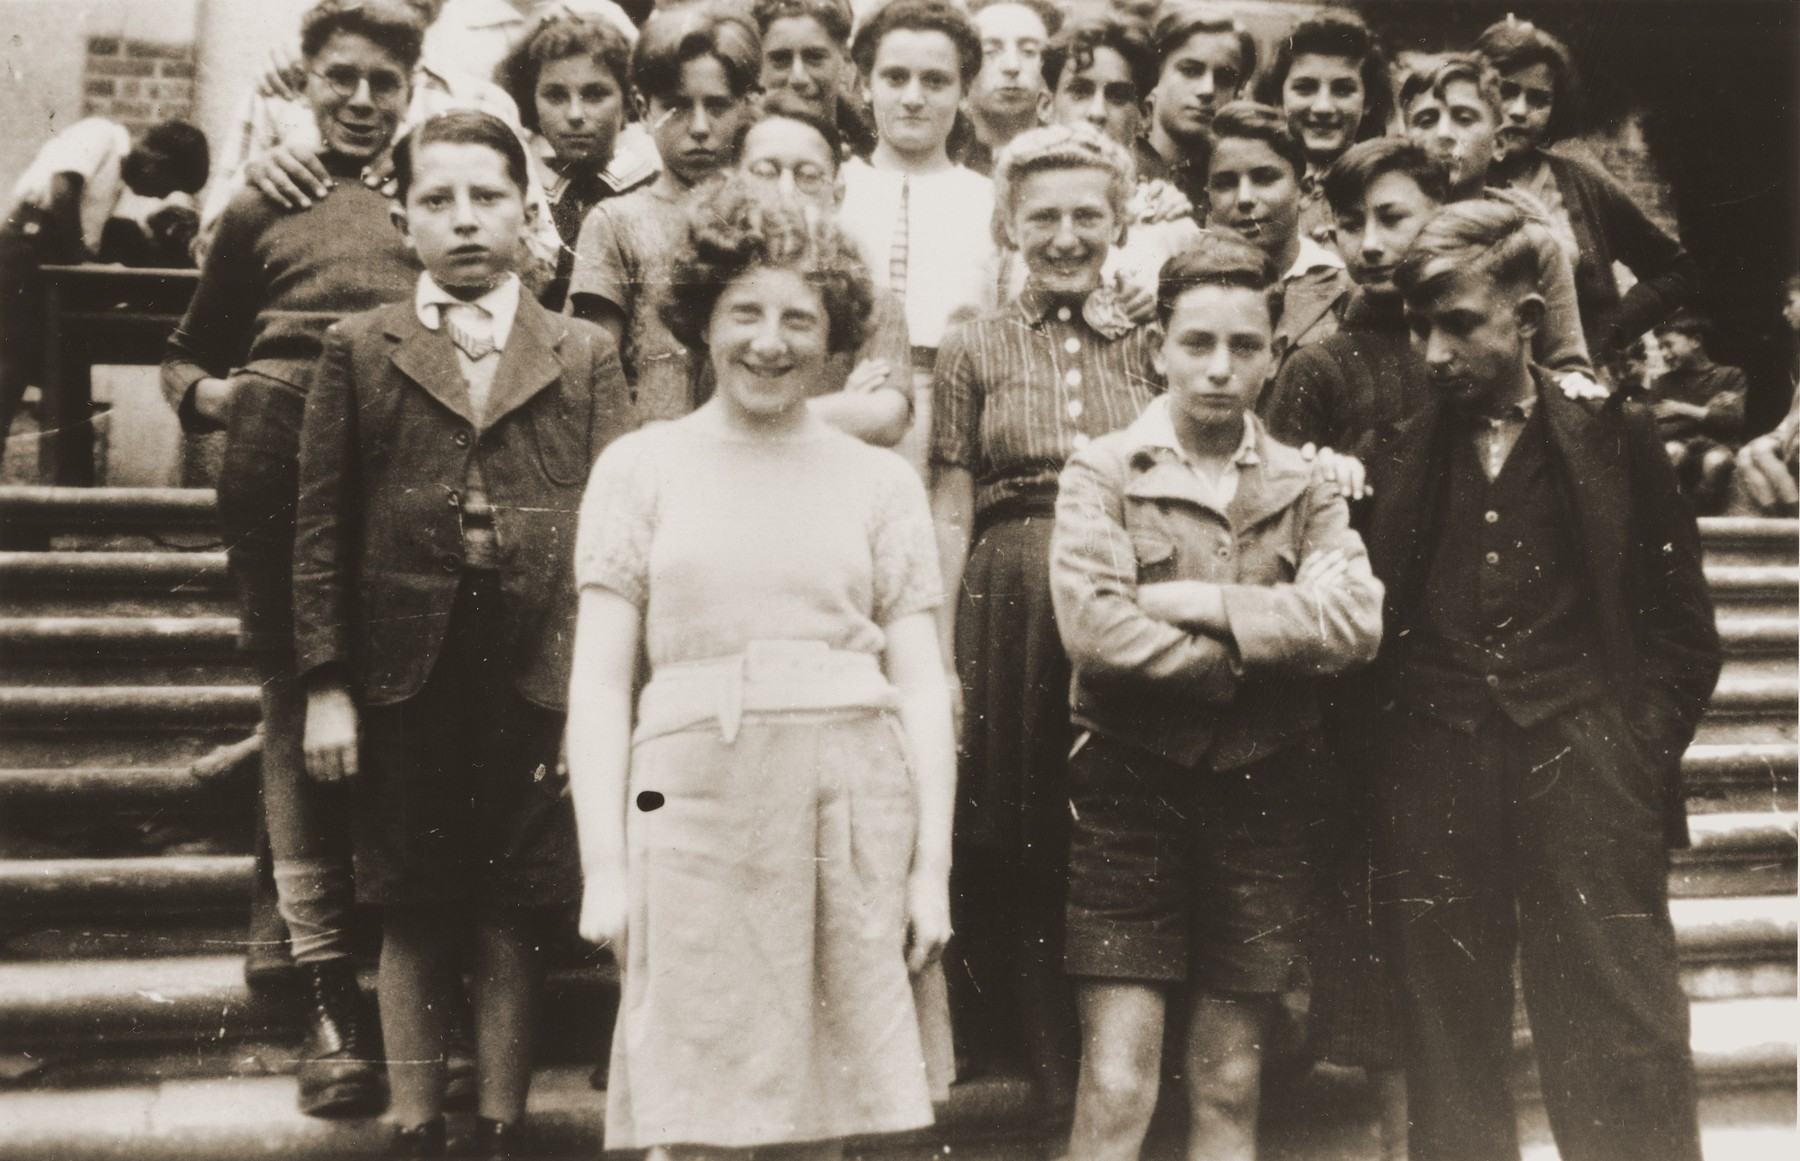 Jewish refugee youth pose on the staircase of the Château de Chabannes children's home near Limoges.  The home was sponsored by the OSE (Oeuvre de secours aux Enfants).    Among those pictured are Heinz Stephan Lewy (third row, second from the left); Gerard Alexander (front row, center); Armand Chochenbaum (back row, far left); Ruth Adwokat (back row, second from the left), and  Siegfried Knop (back row, center)..